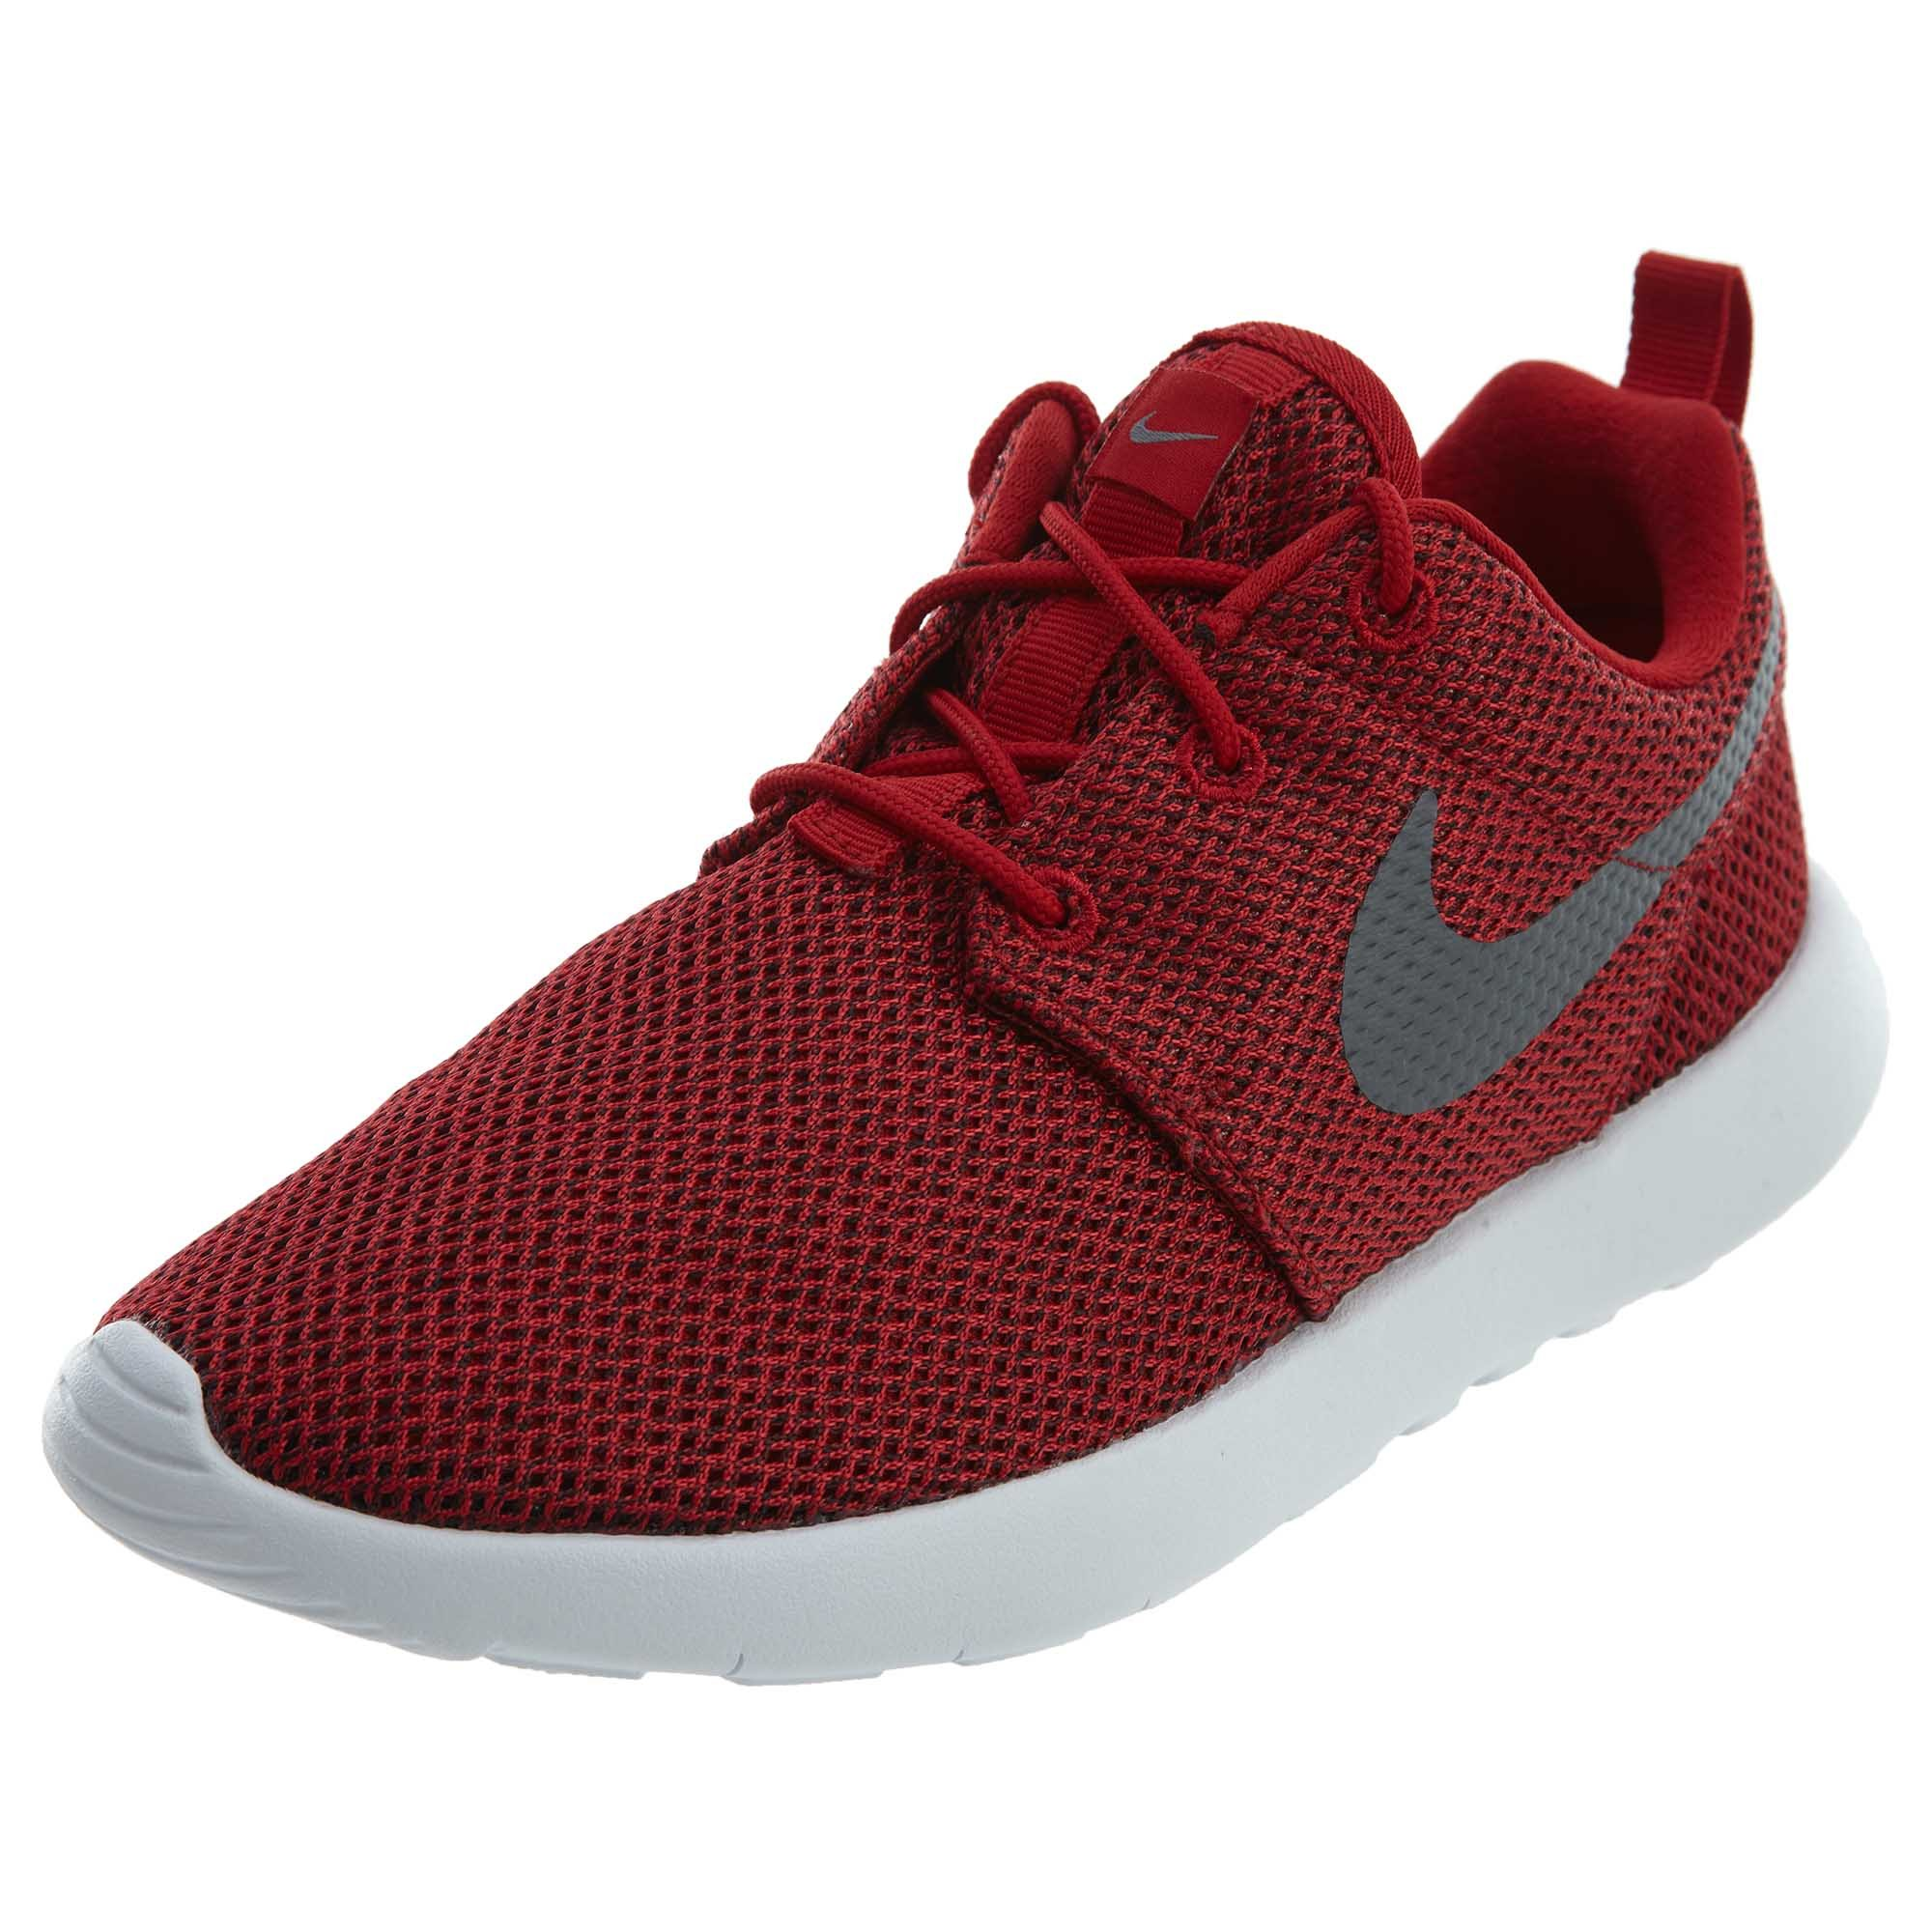 99d32ac4 Galleon - Nike Roshe One Little Kids Style: 749427-608 Size: 1